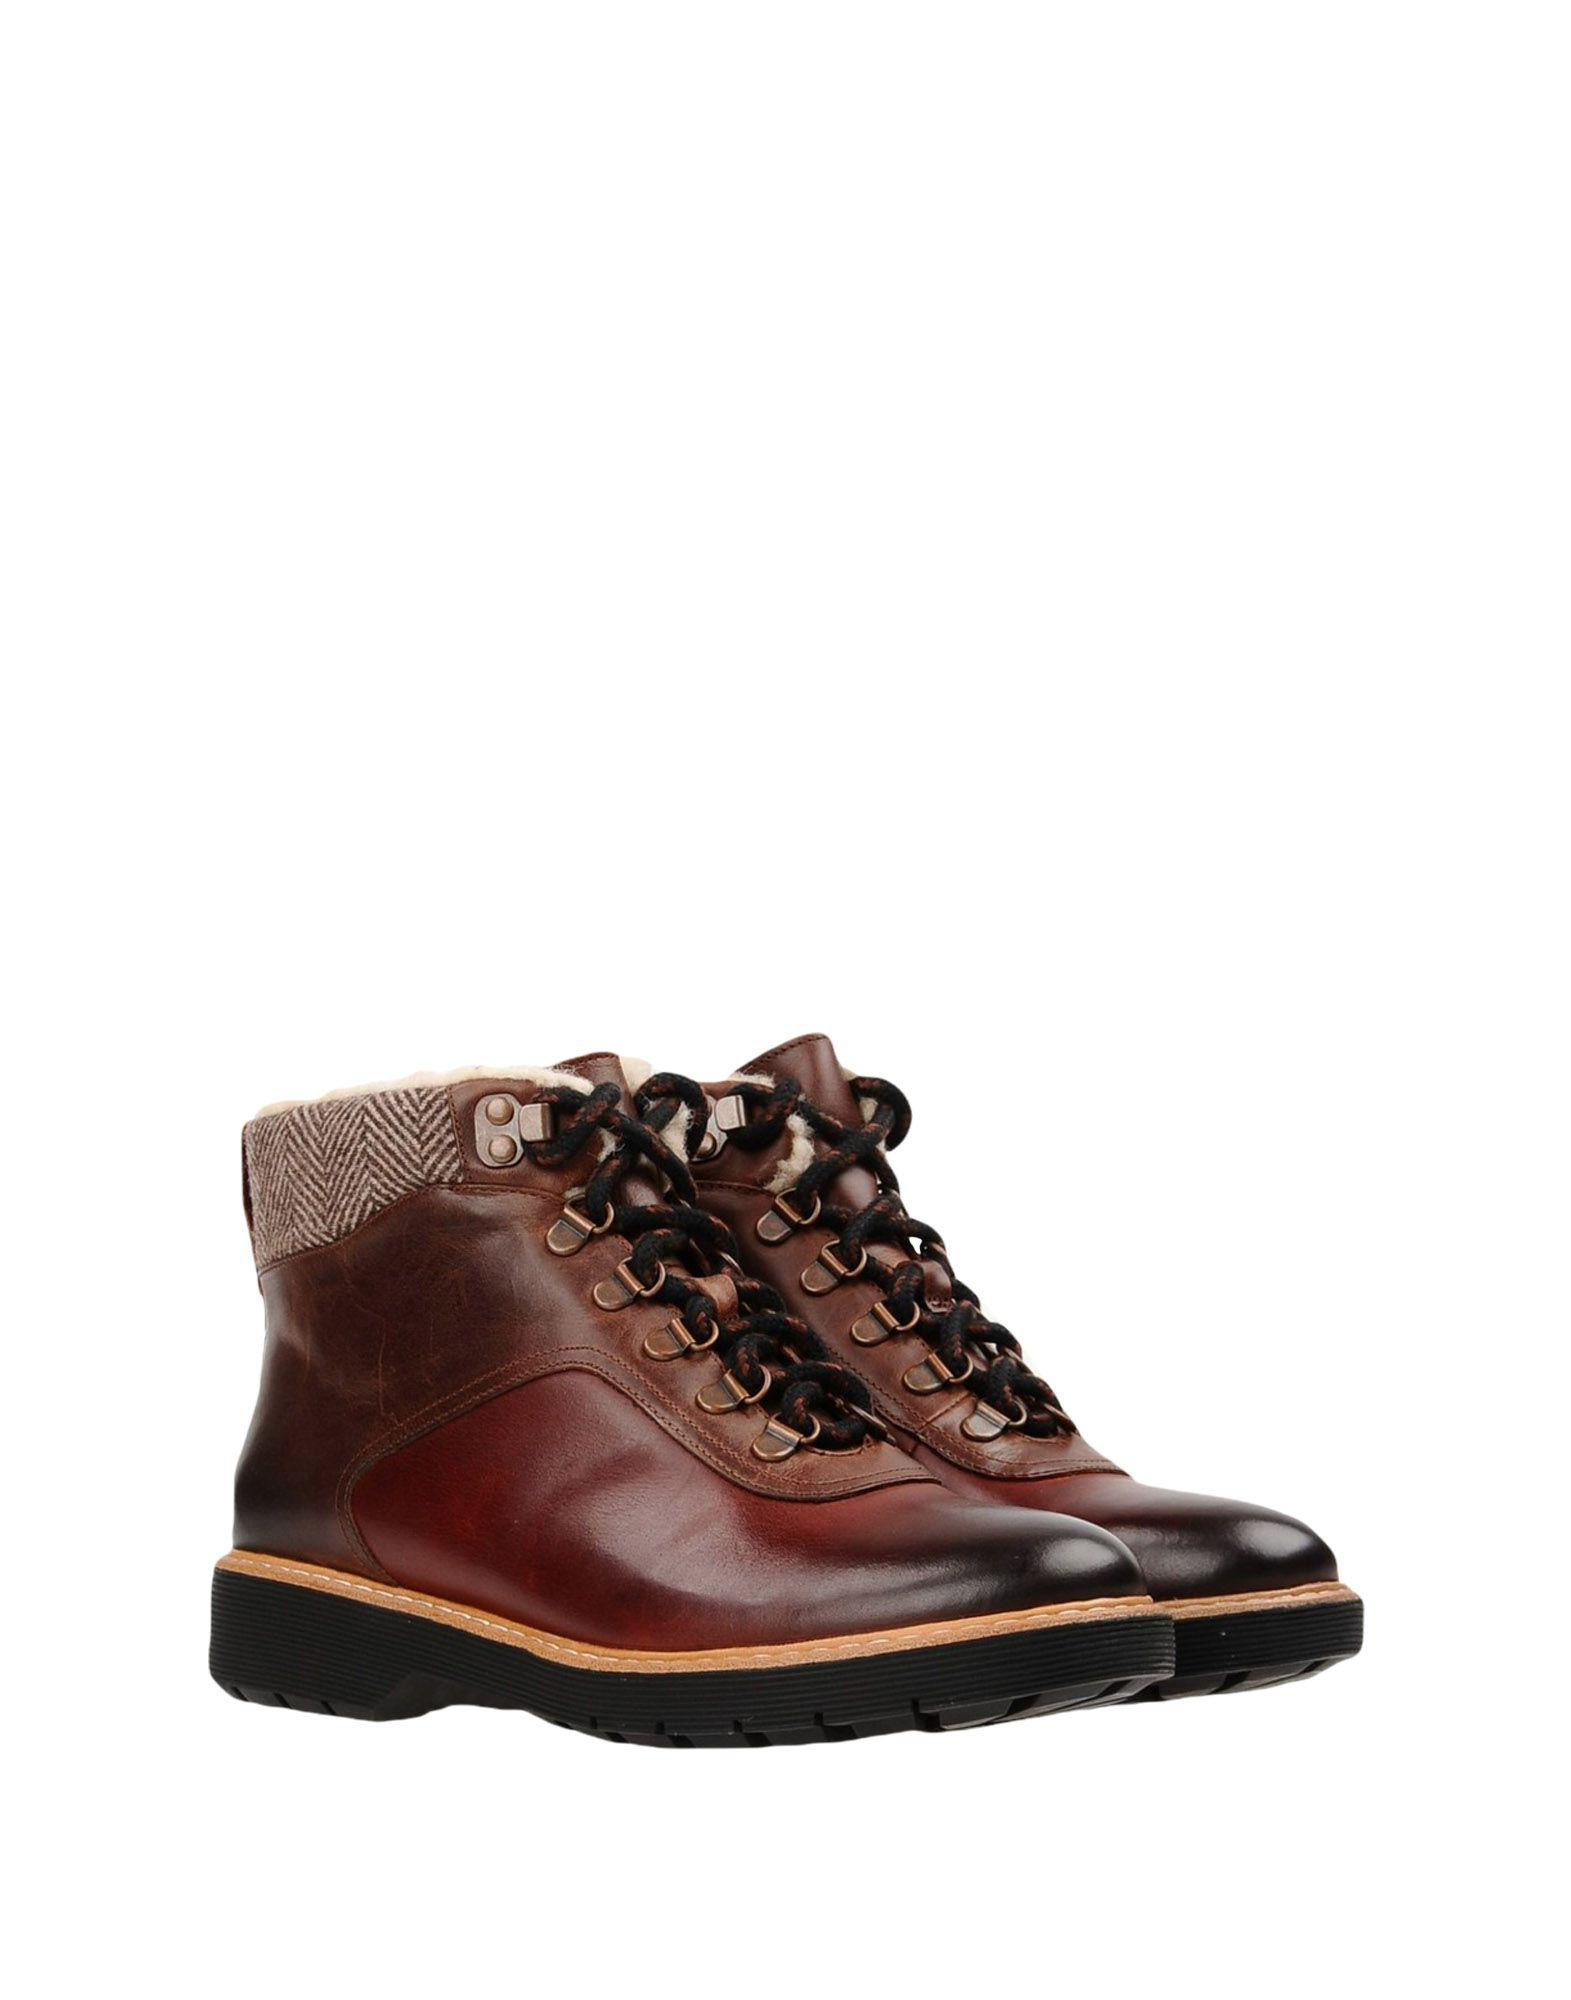 Clarks Ankle Boots in Cocoa (Brown)